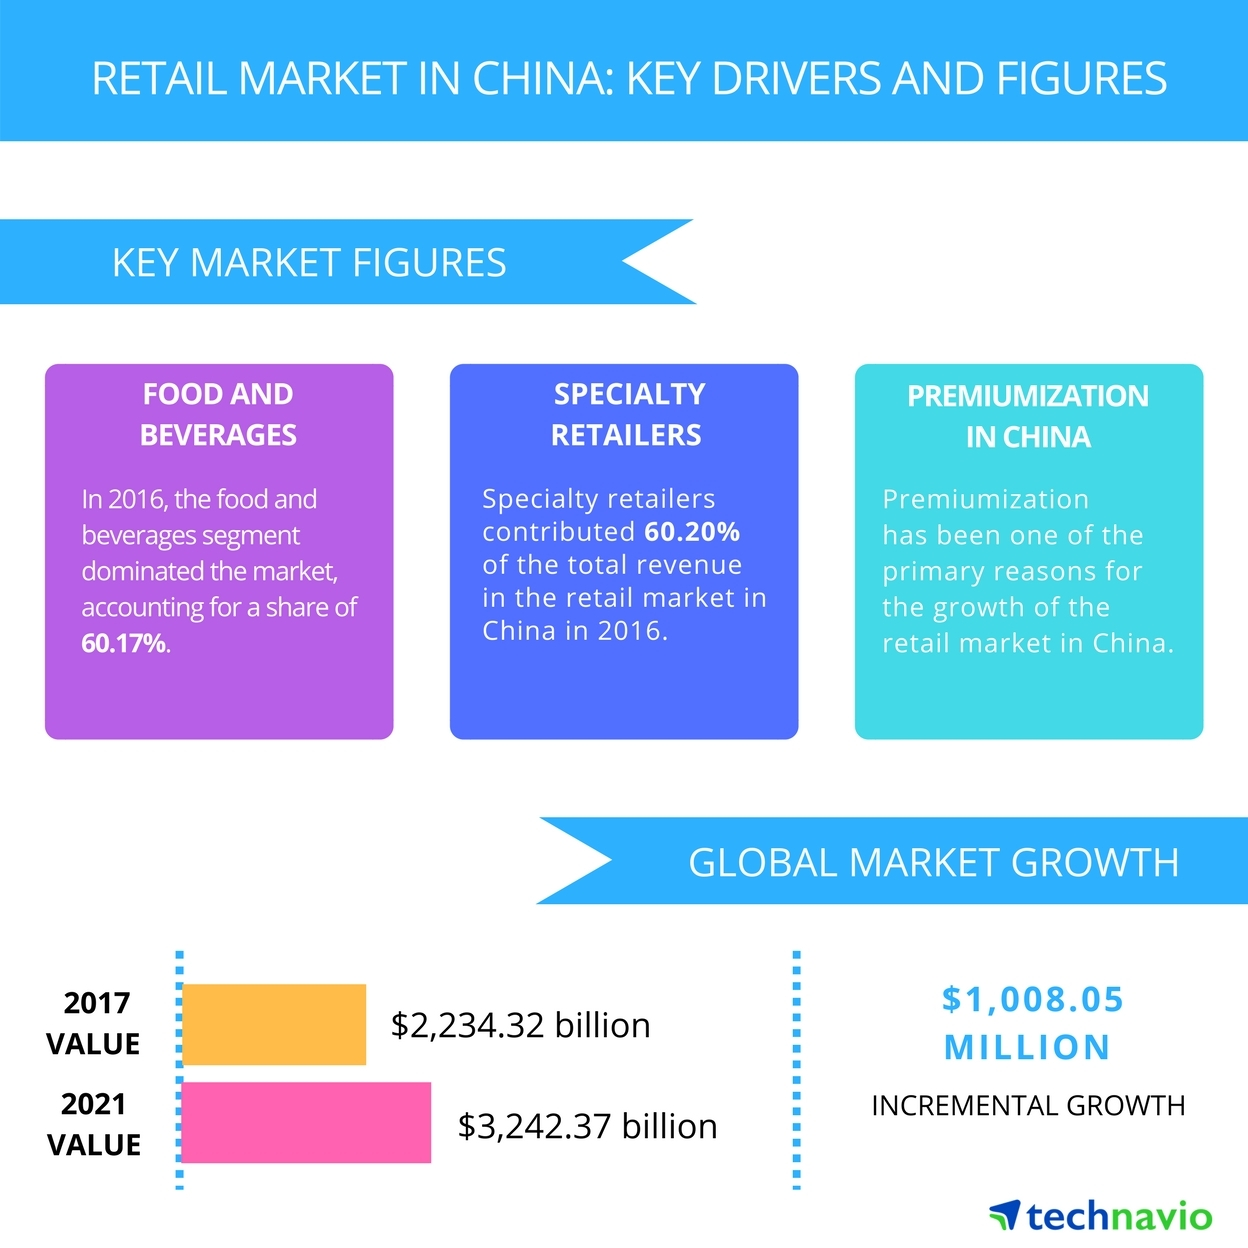 Intellasia East Asia News Retail Market In China Drivers And